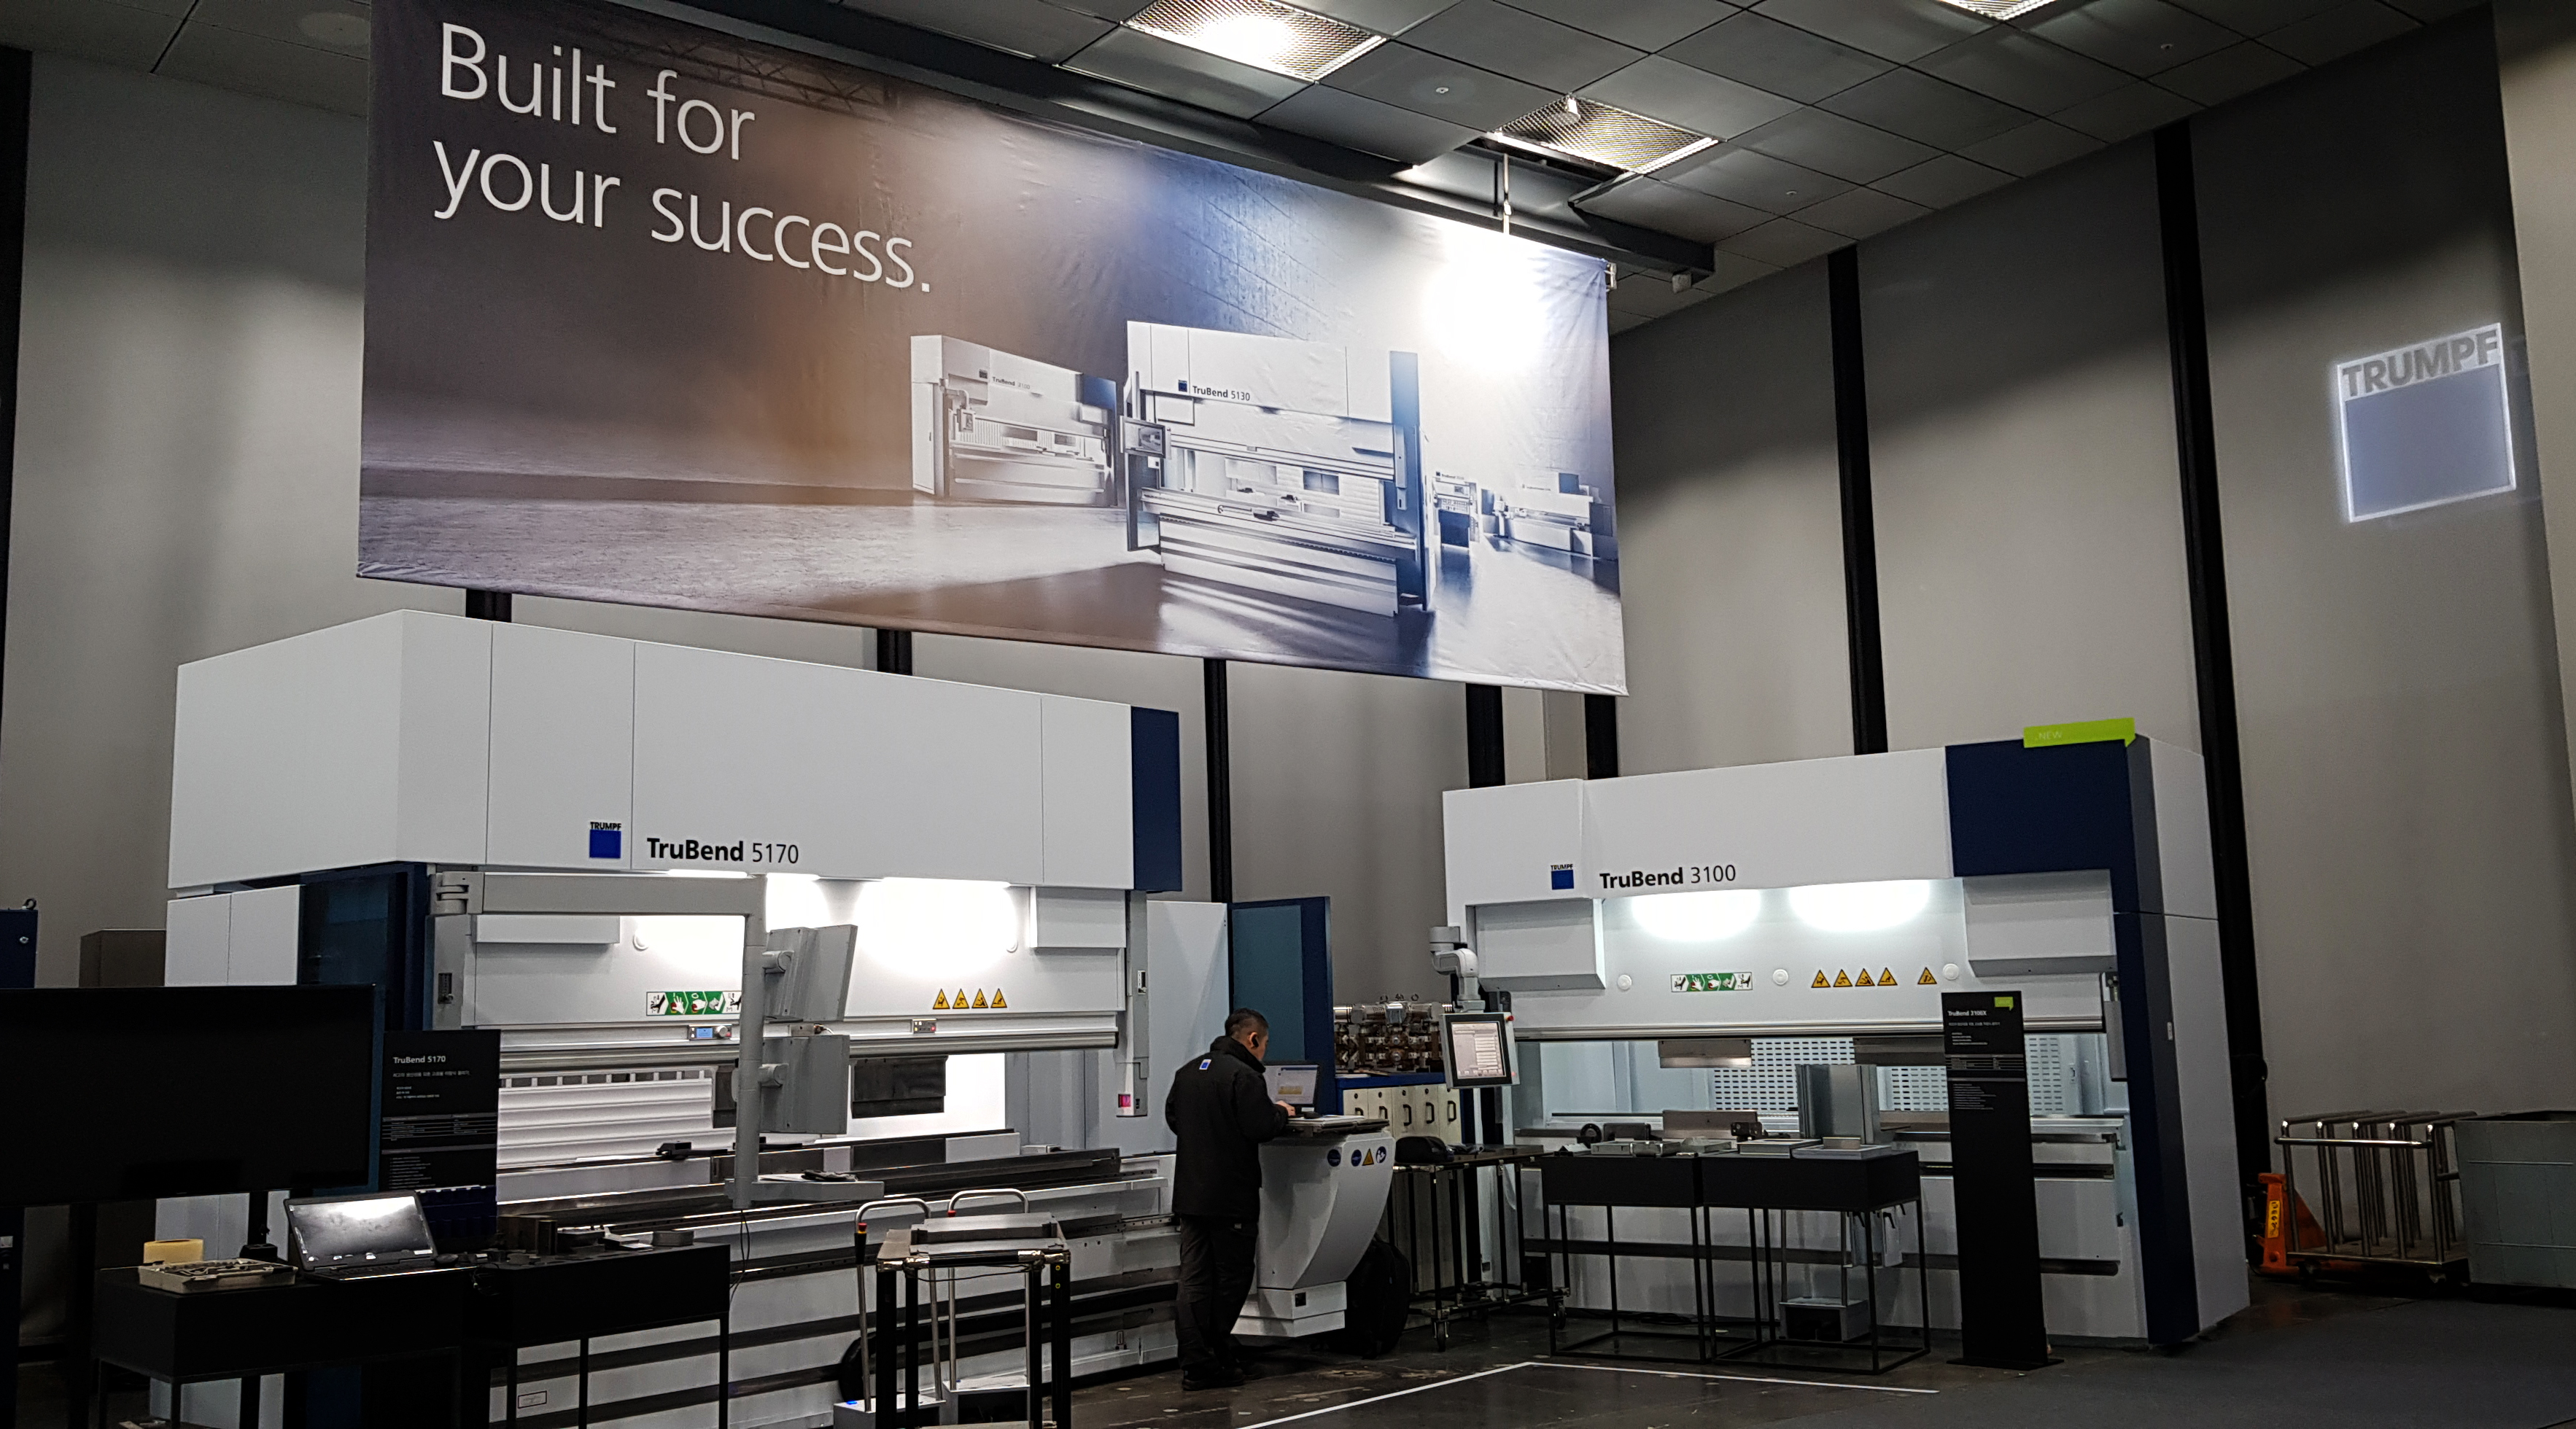 TRUMPF Dealer event